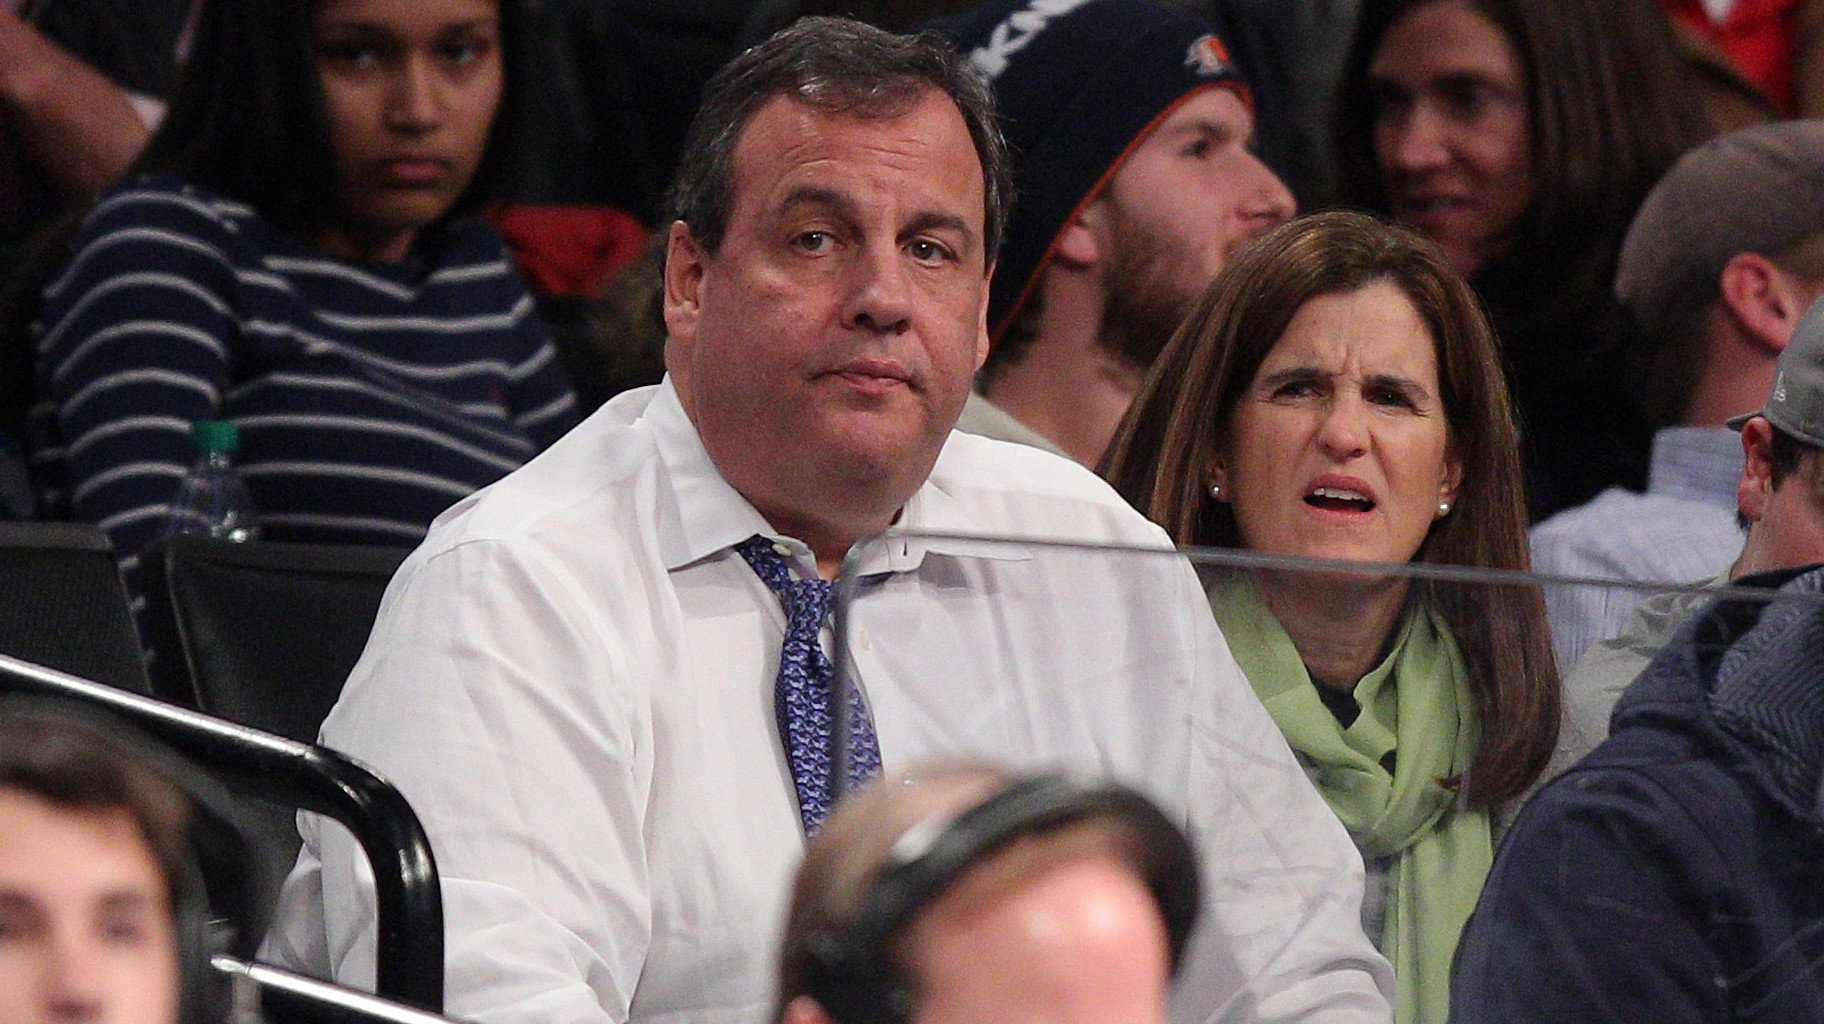 chris christie gets called a fat ass in sports radio audition